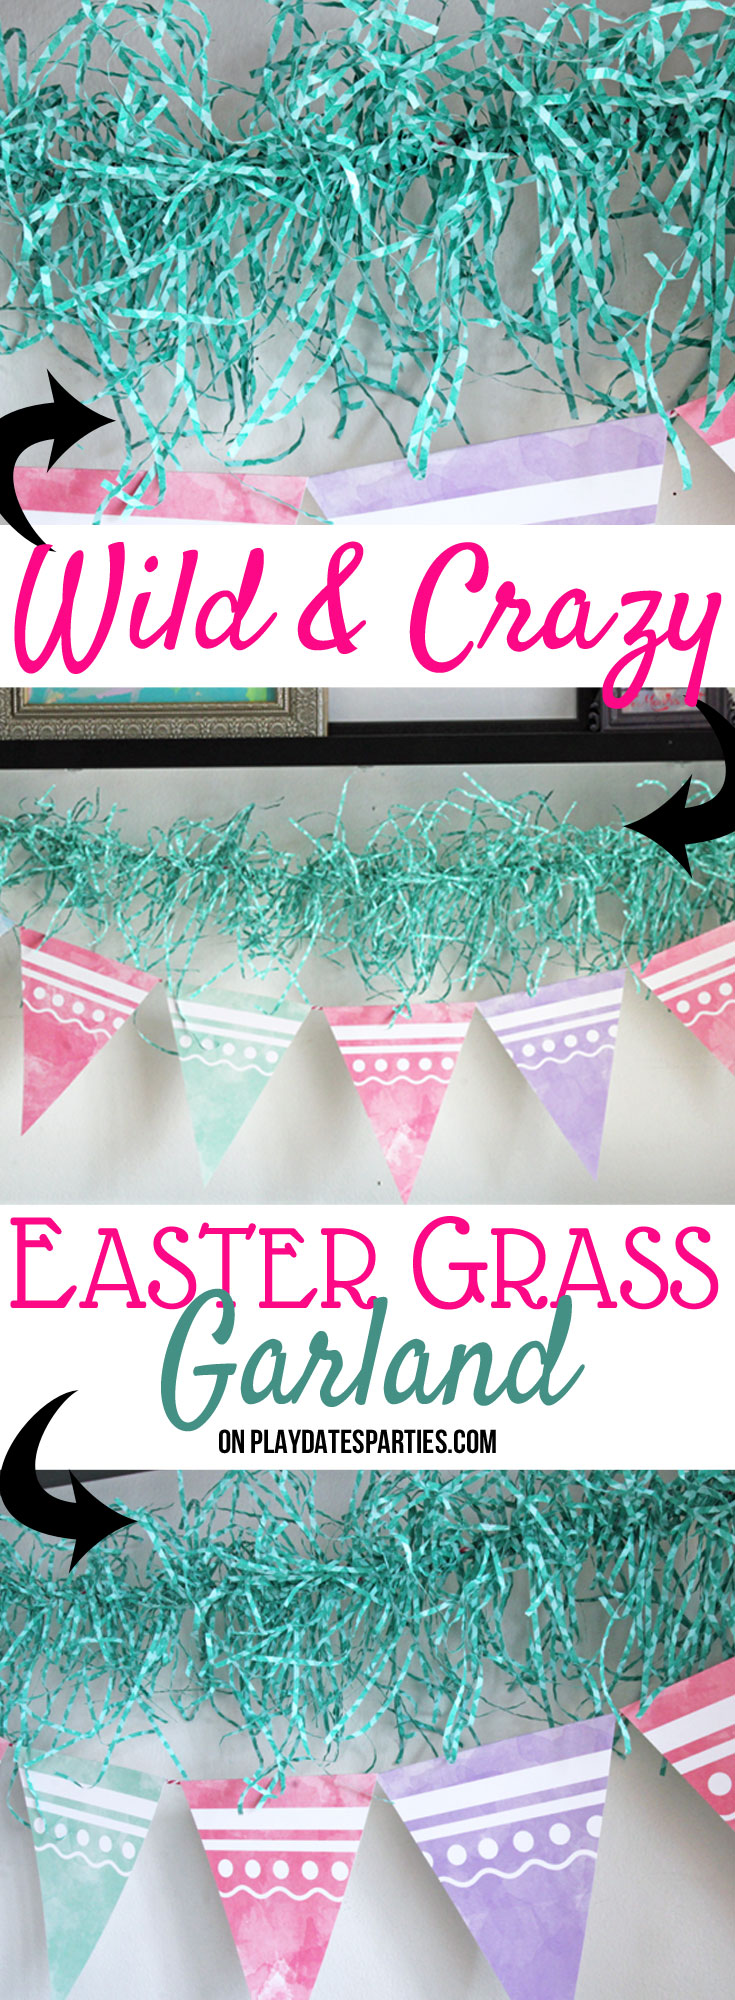 Just by using some paper Easter grass and some hot glue, you can make this easy Easter garland that adds some fun to your holiday decor. Head on over to playdatesparties.com to get the full tutorial. #Easter #craft #budget #holiday